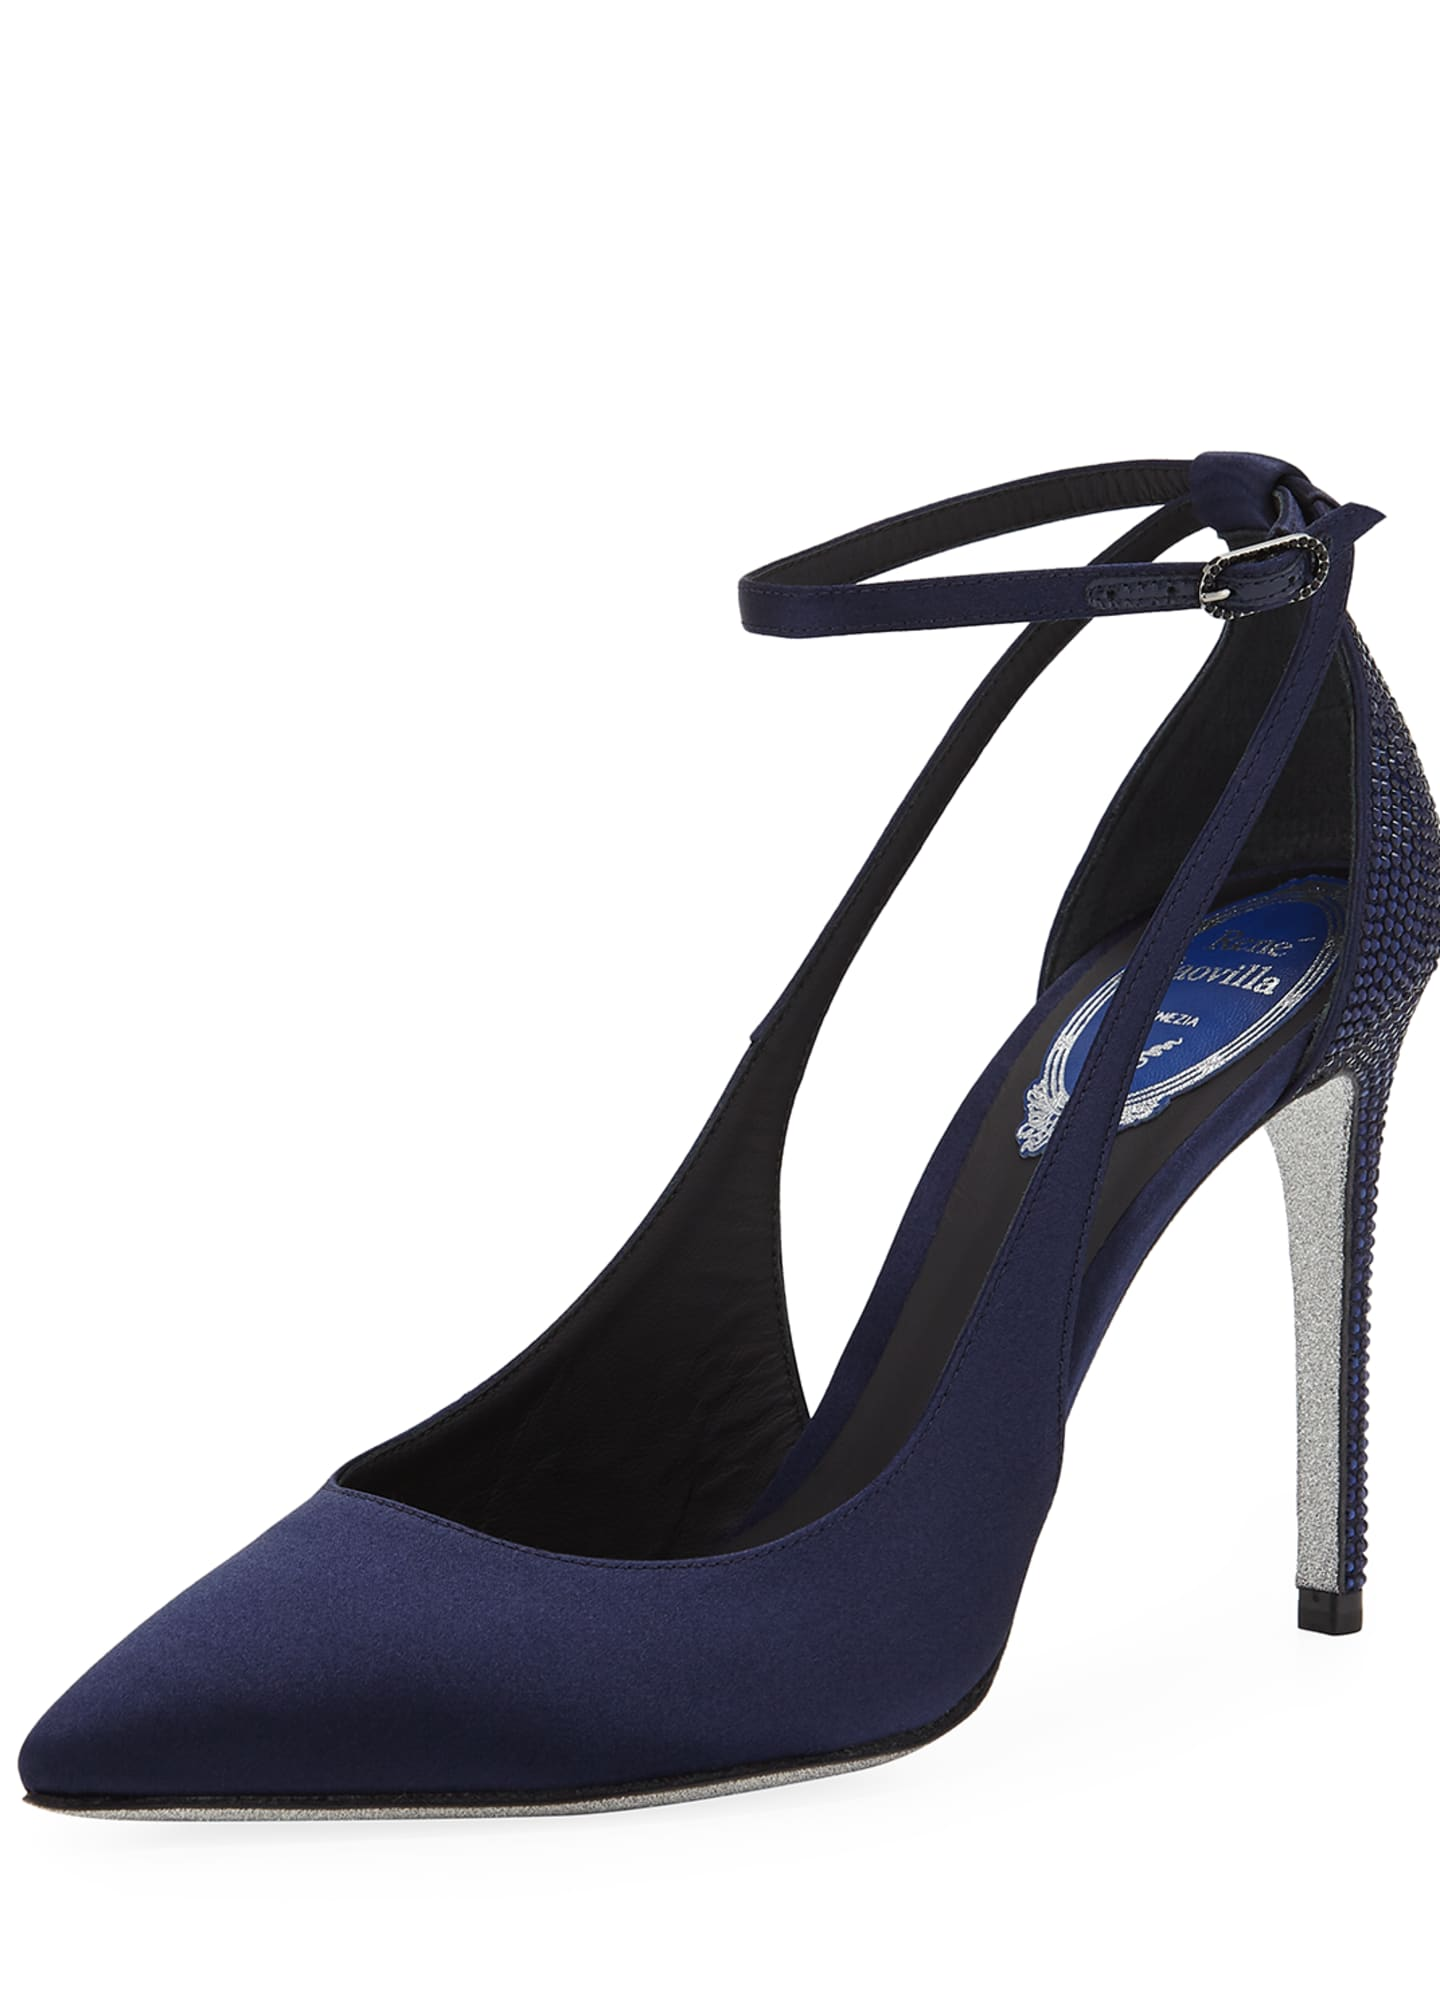 Rene Caovilla Evania Satin Pointed Pumps